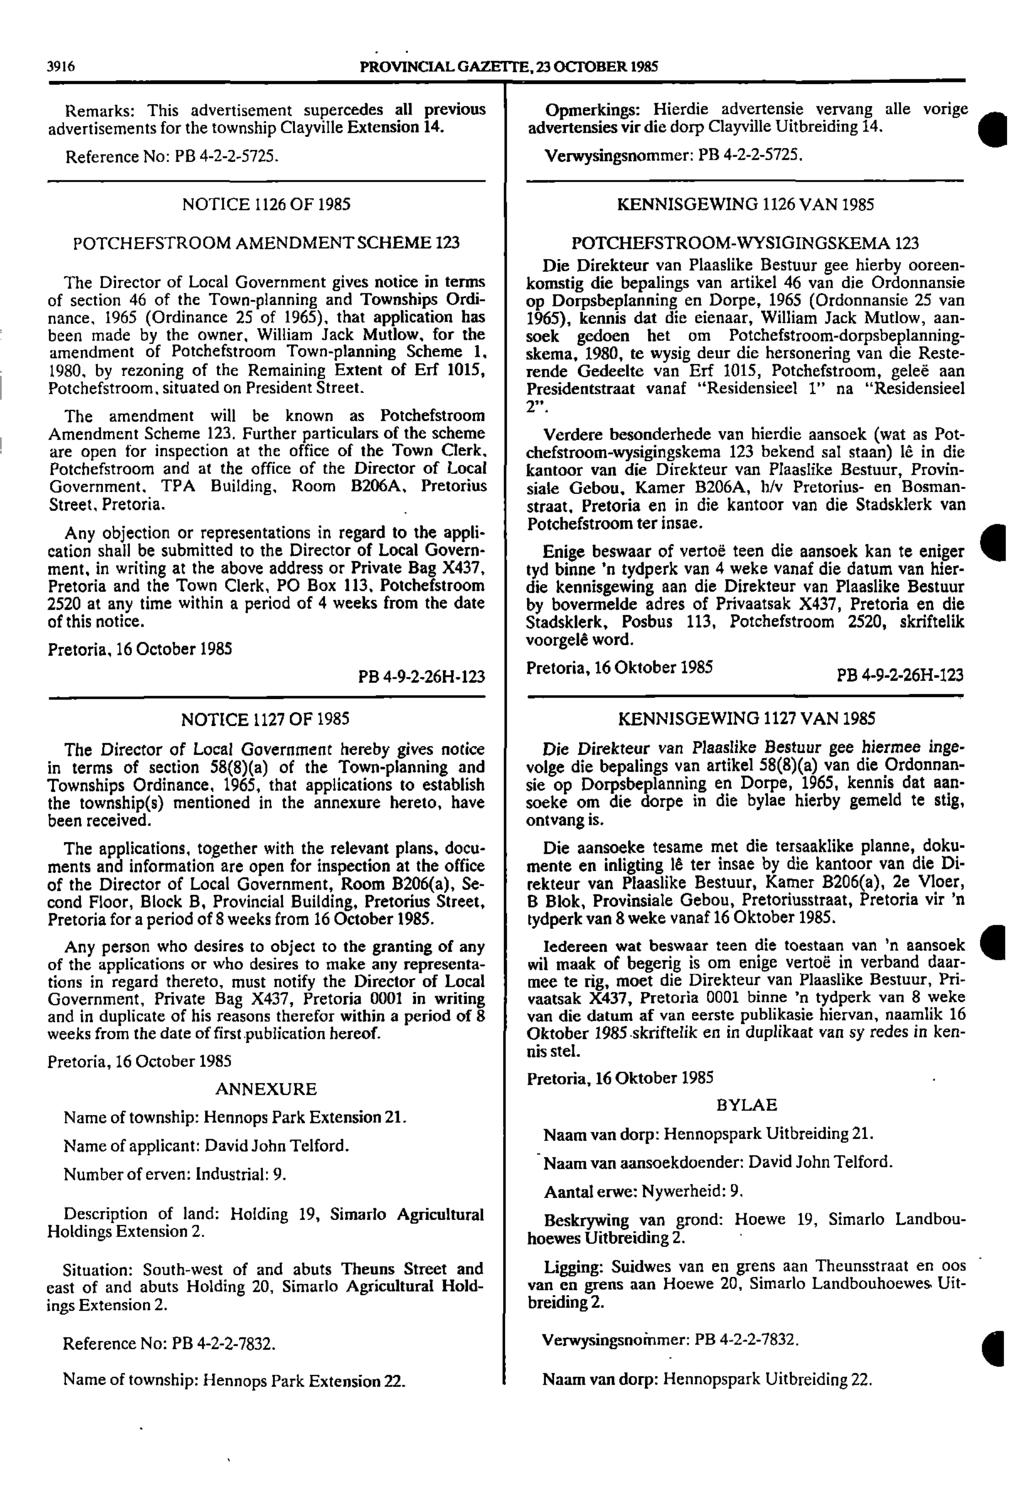 .. 3916 PROVINCIAL GAZETTE, 23 OCTOBER 1985 111 advertisements Remarks: This advertisement supercedes all previous Opmerkings: Hierdie advertensie vervang alle vorige for the township Clayville